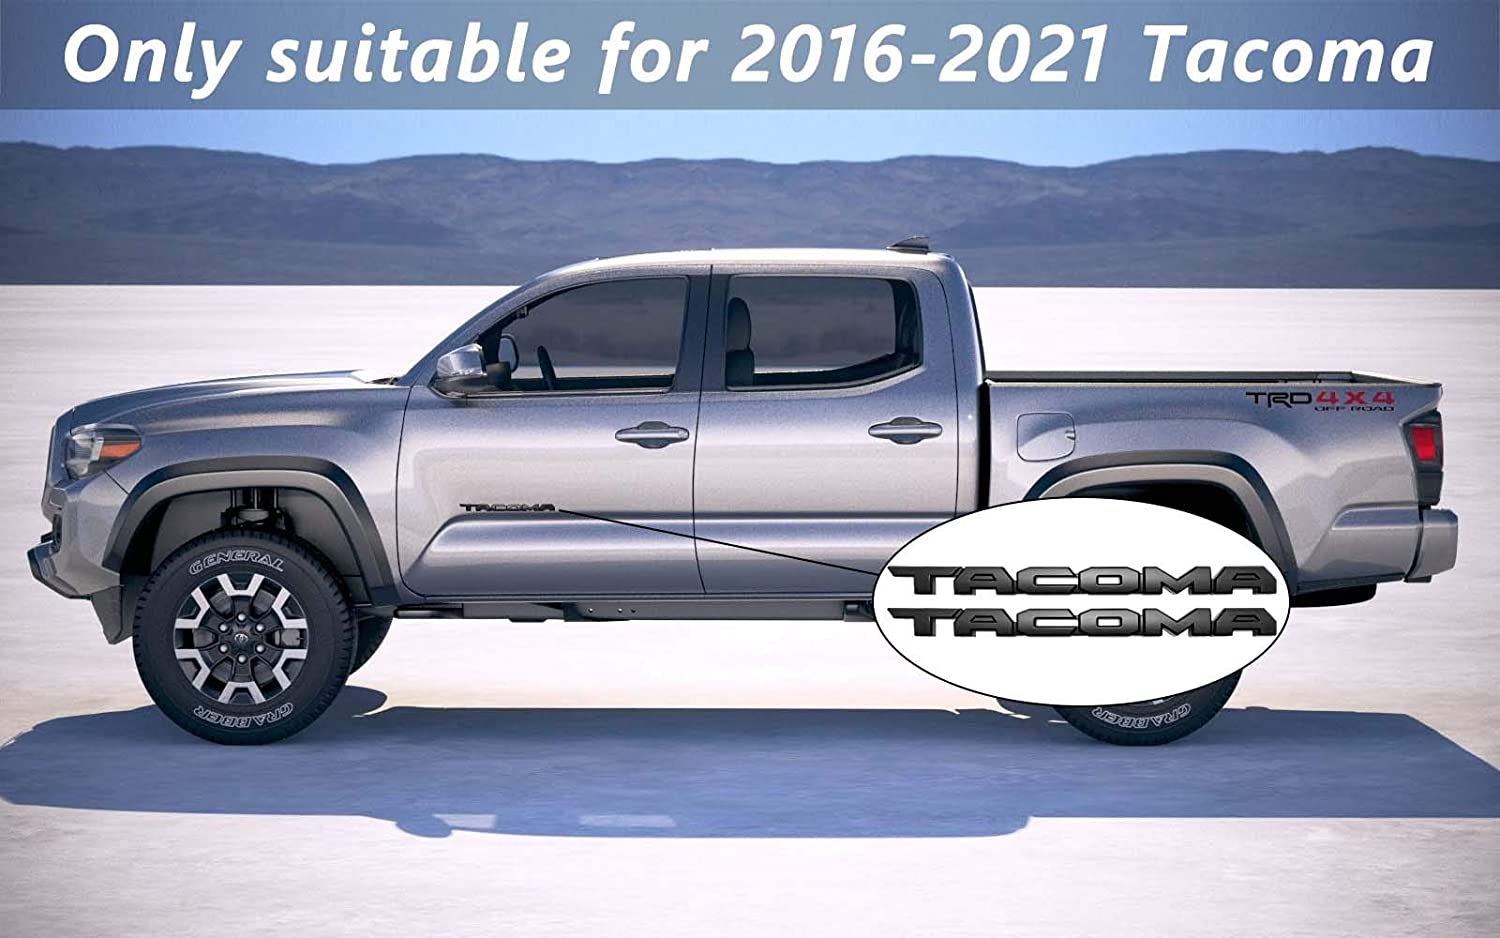 used for car safety made of durable ABS plastic KIT PT948-35180-02 Black 4 pieces Jusen is suitable for 2016-2021 TAC Blackout Emblem Overlay Tacoma accessories